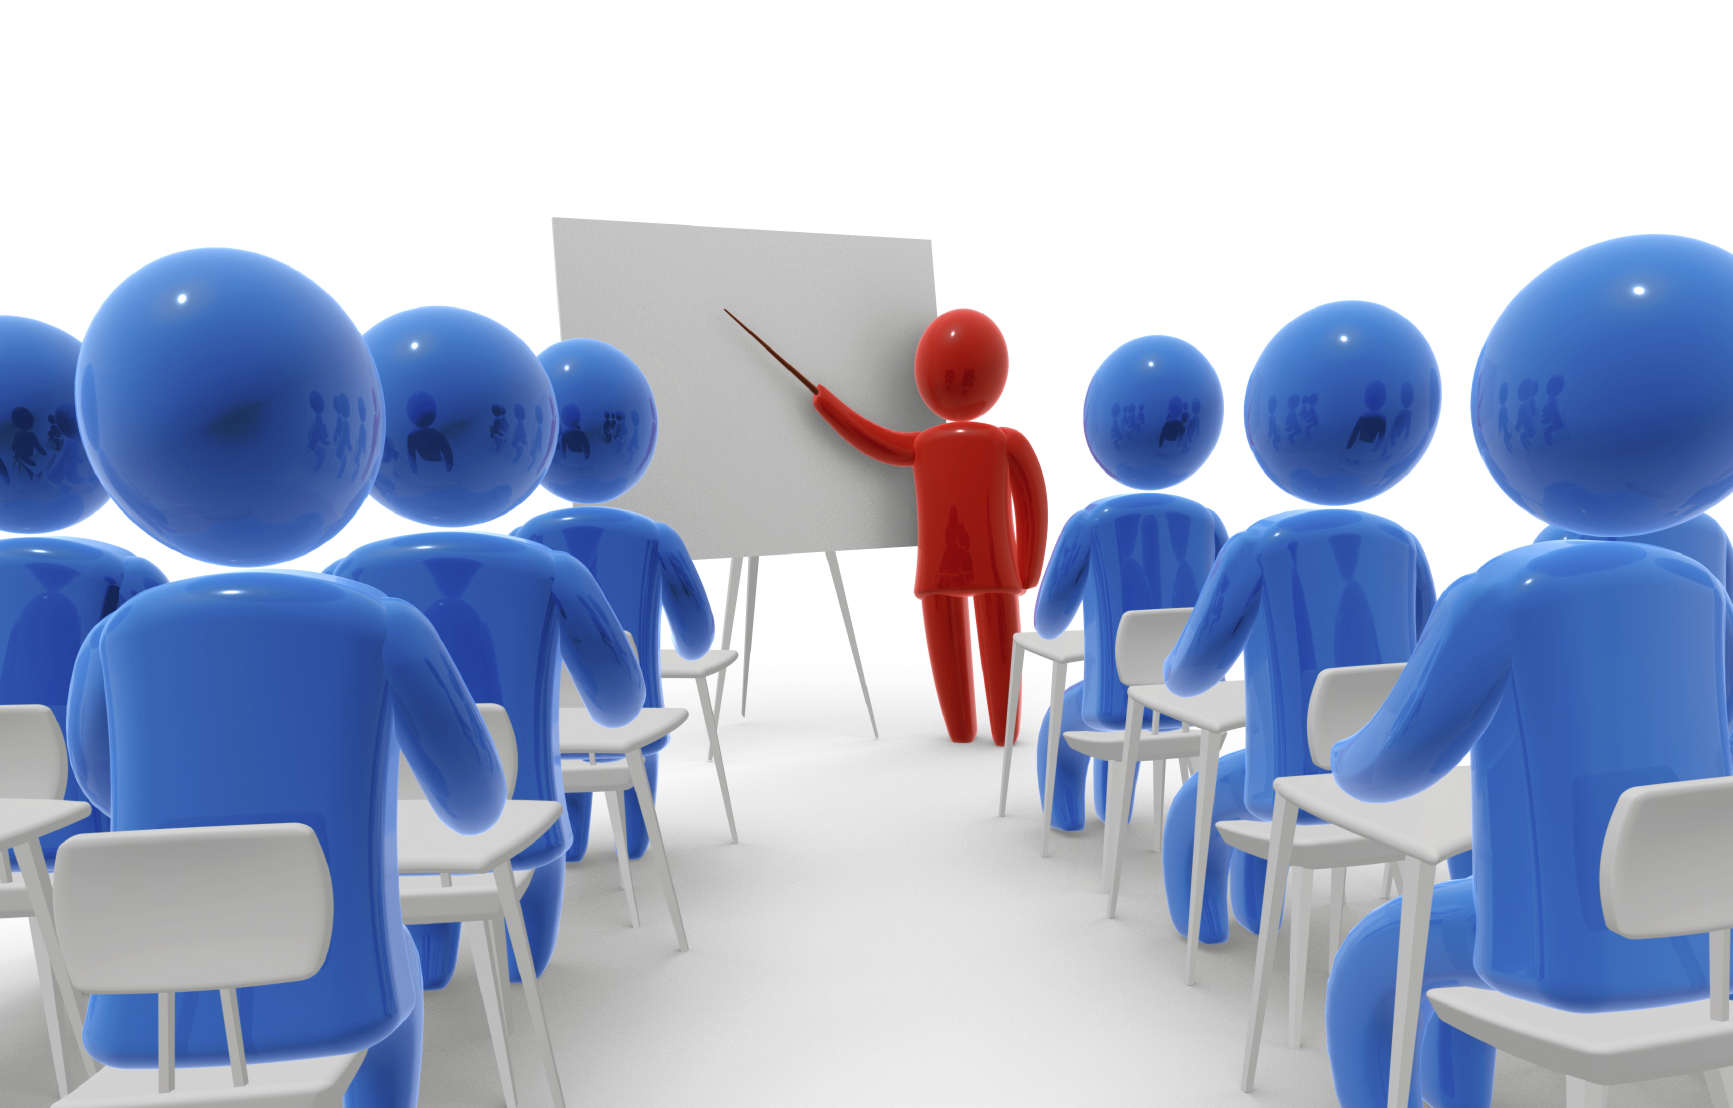 Discover AMA's Management Training Seminars, Courses, and Programs